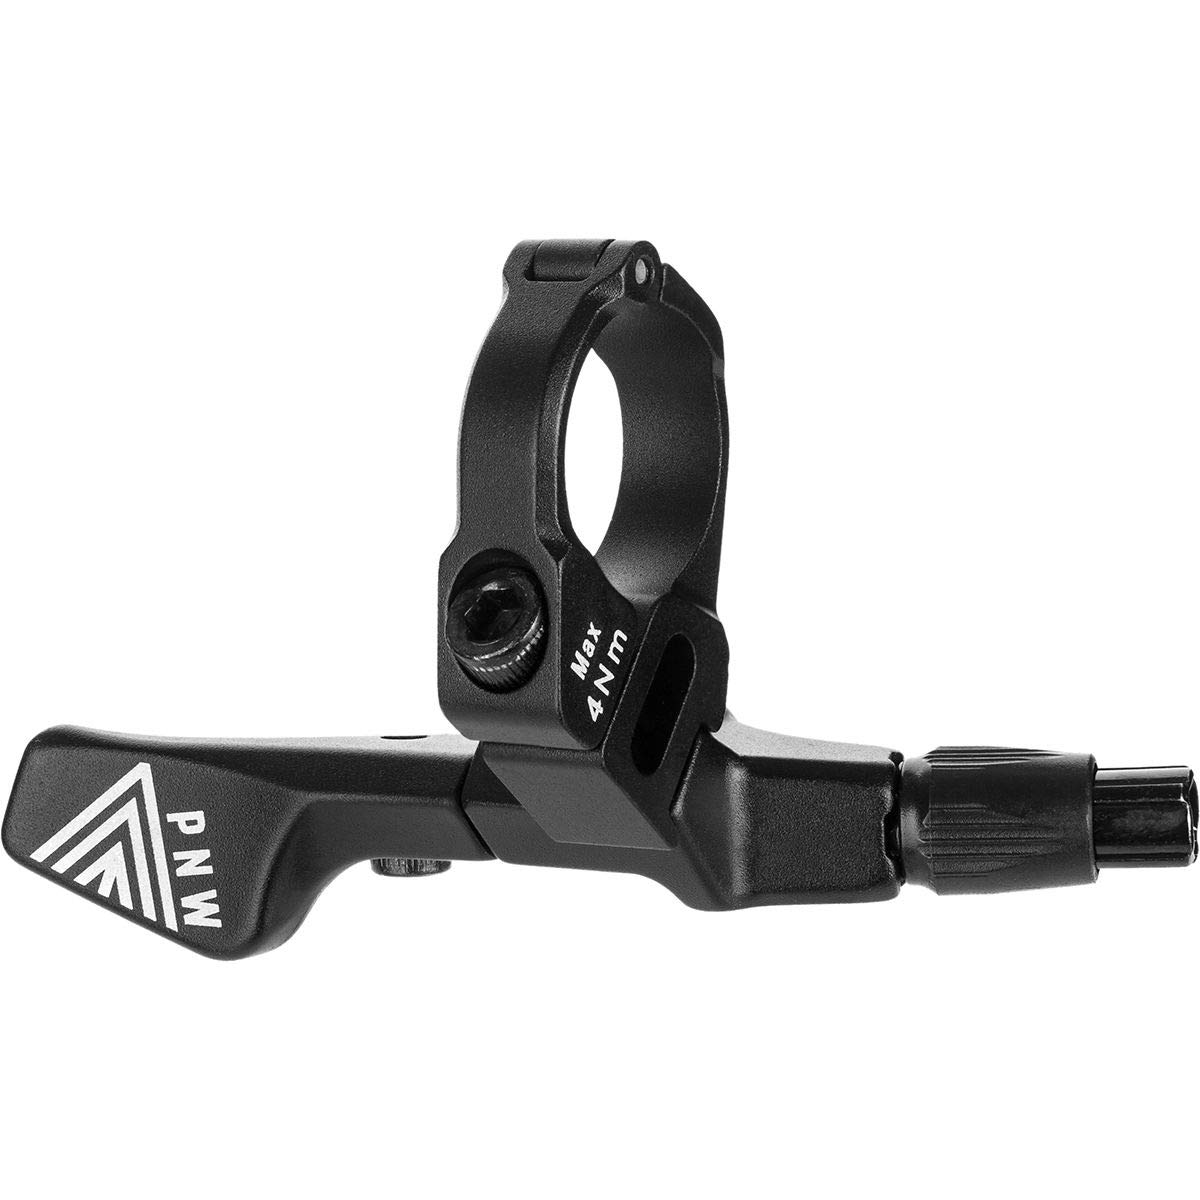 PNW Components Puget Thumb Lever Dropper Remote Black, One Size by PNW Components